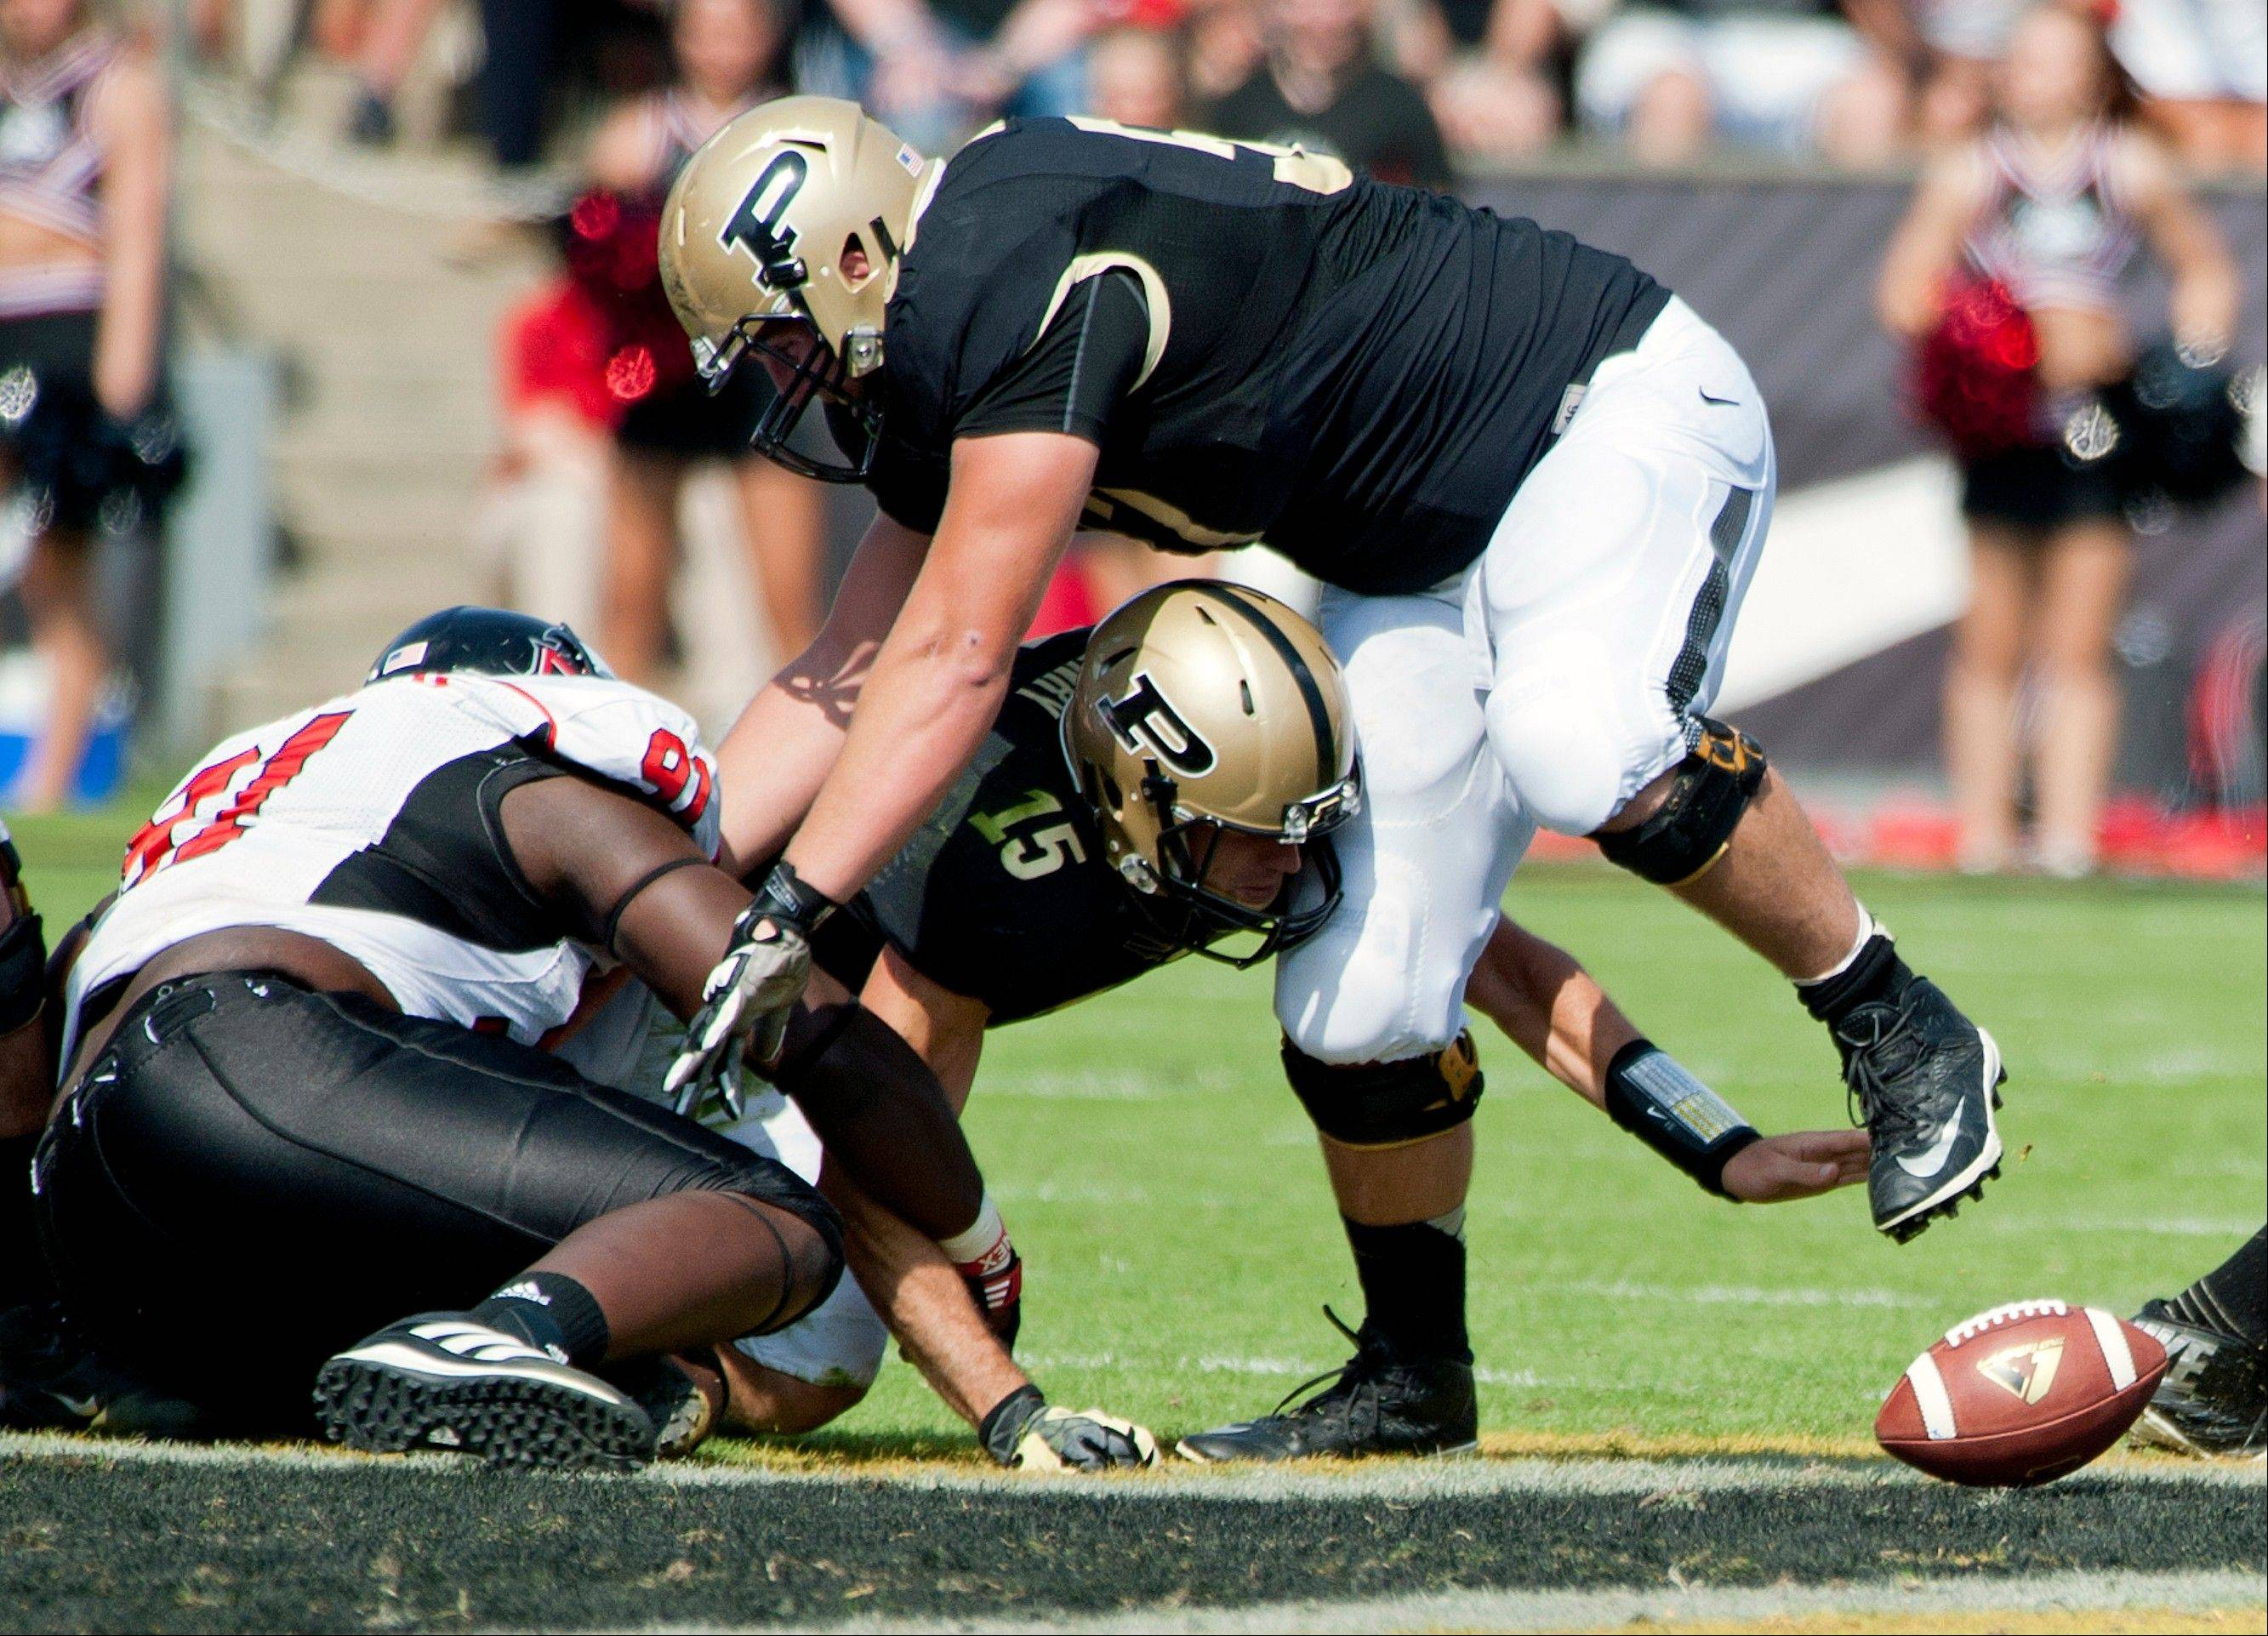 Purdue quarterback Rob Henry loses the football against Northern Illinois during Saturday's game at Ross-Ade Stadium in West Lafayette, Ind.